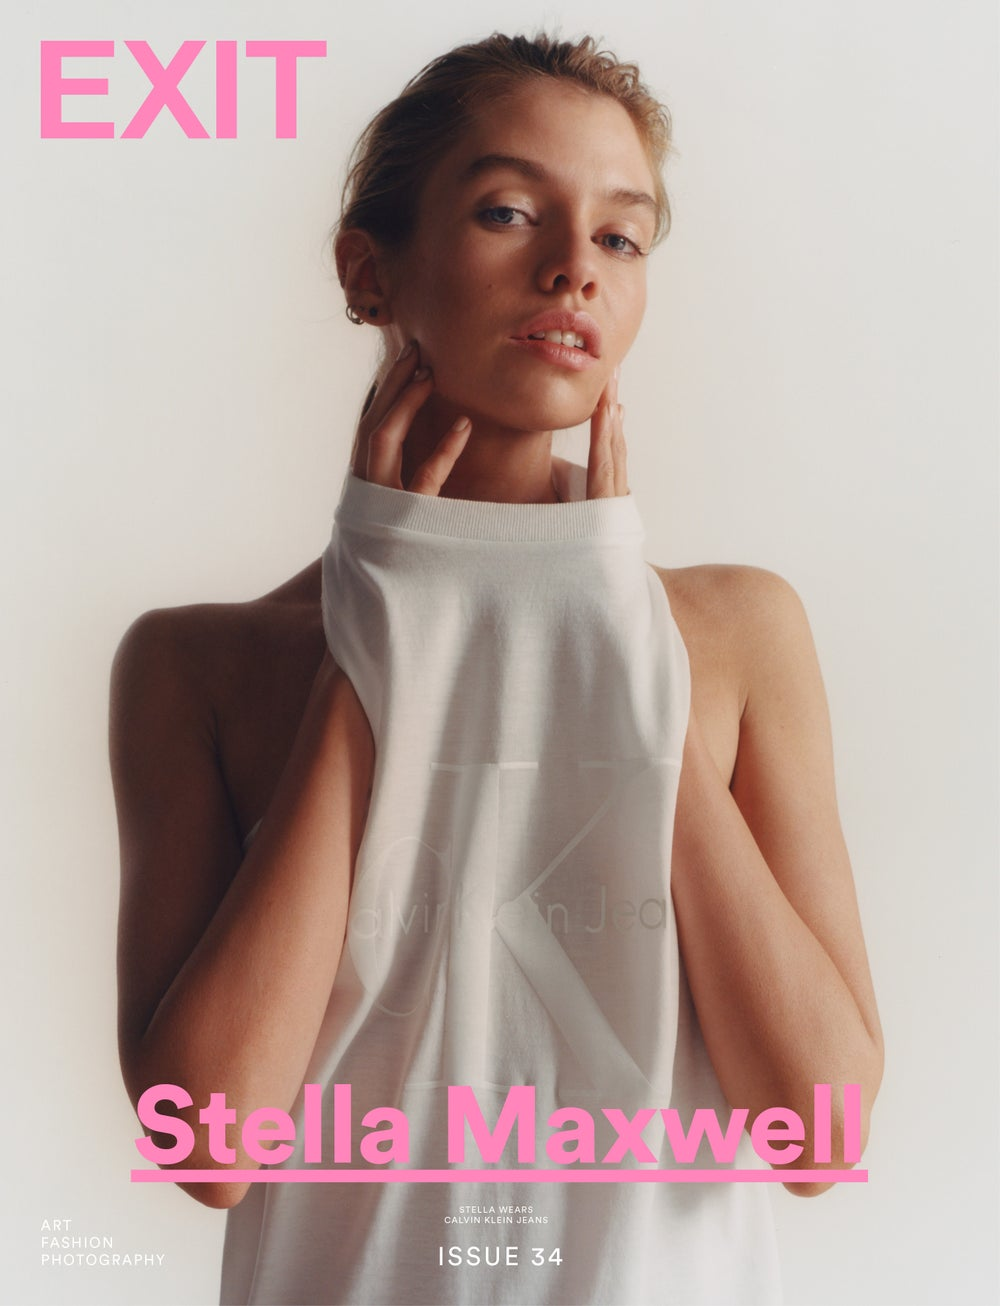 Image of EXIT MAGAZINE ISSUE 34 (STELLA MAXWELL COVER)